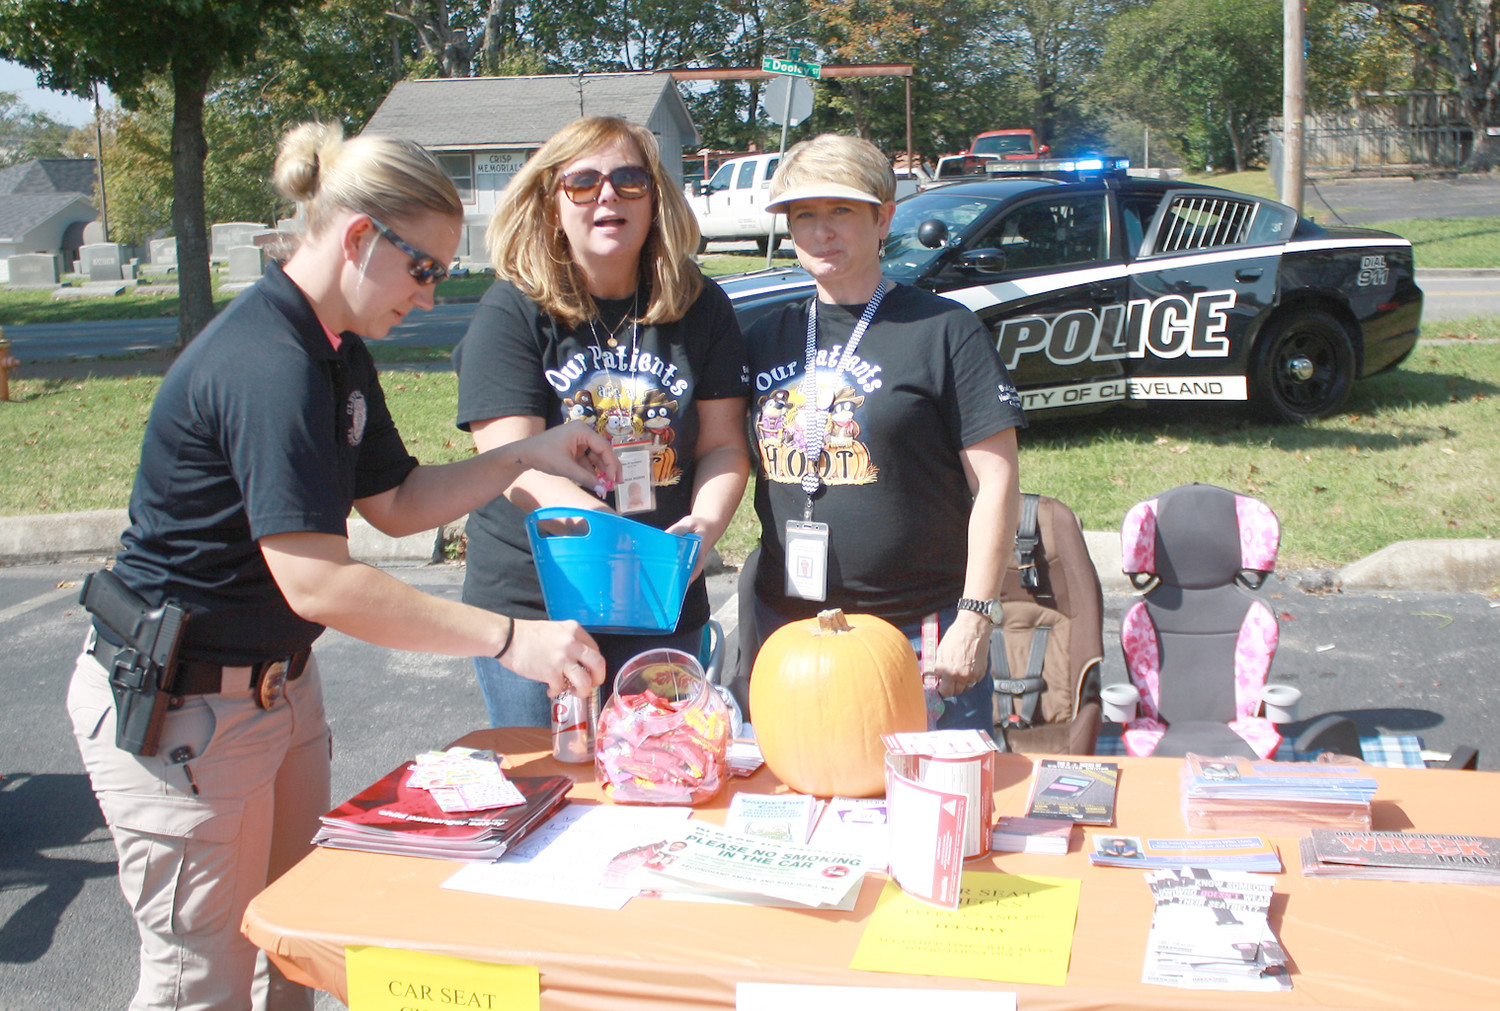 CLEVELAND OFFICER Jennifer Samples, left, joined health department technicians Teresa Rodgers, center, and Tammy Stevison in giving directions for installing child safety seats.